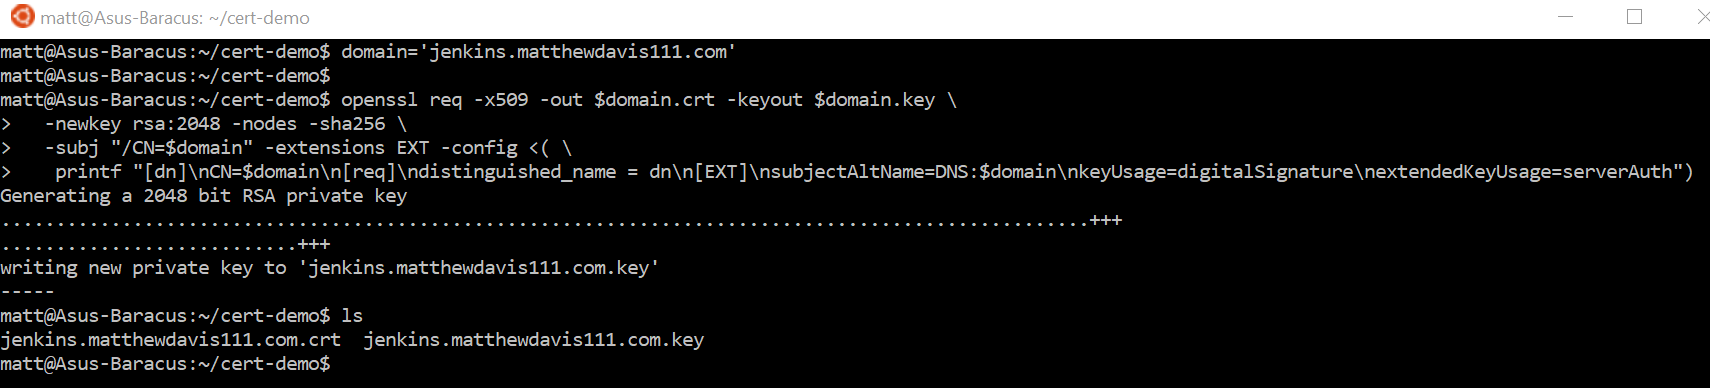 Creating the certificate and private key using Windows Subsystem for Linux